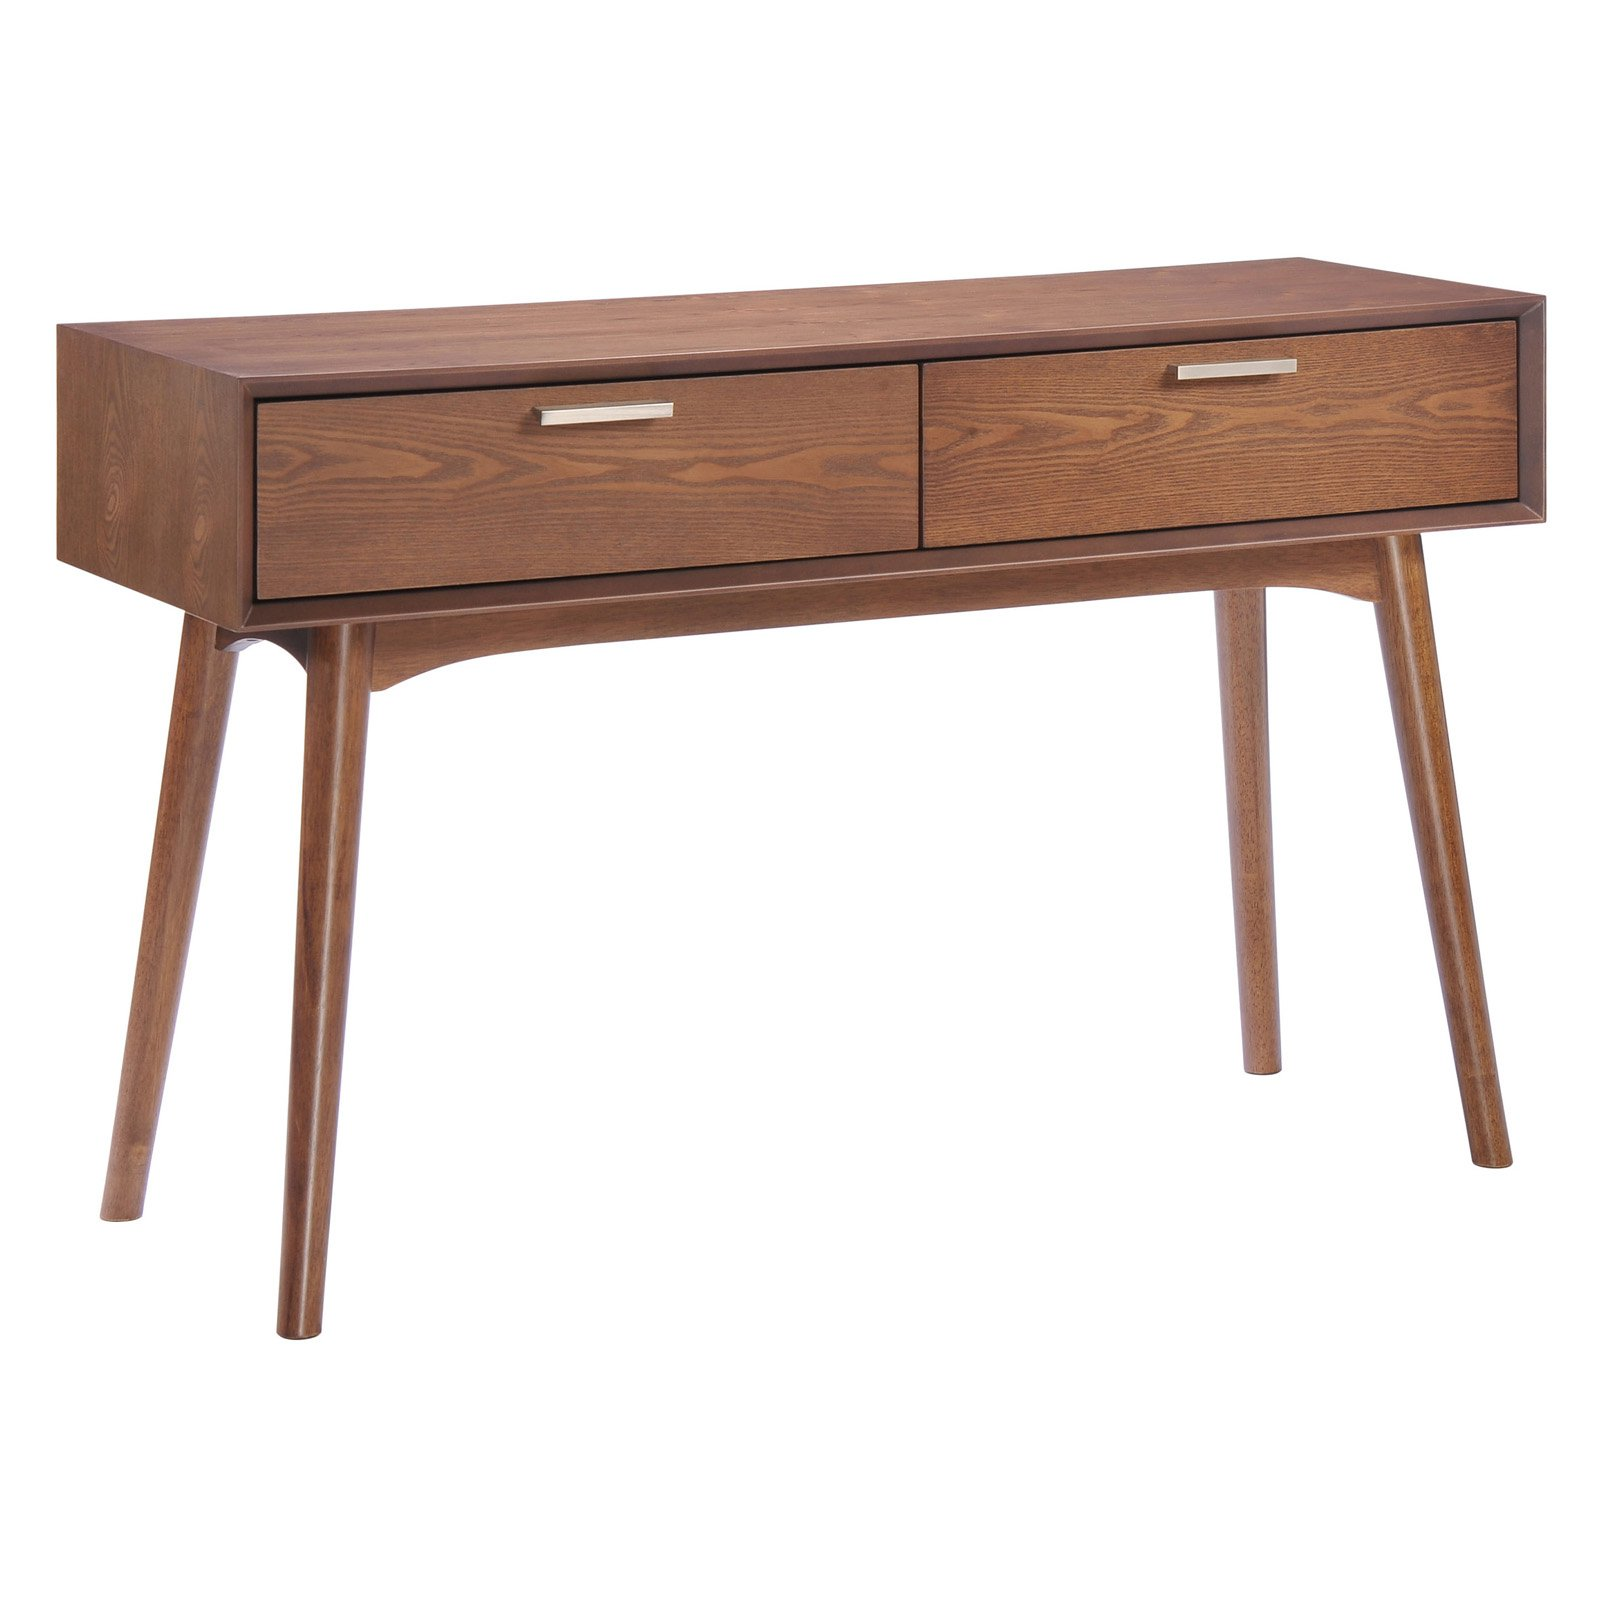 Zuo Design District Rectangle Console Table